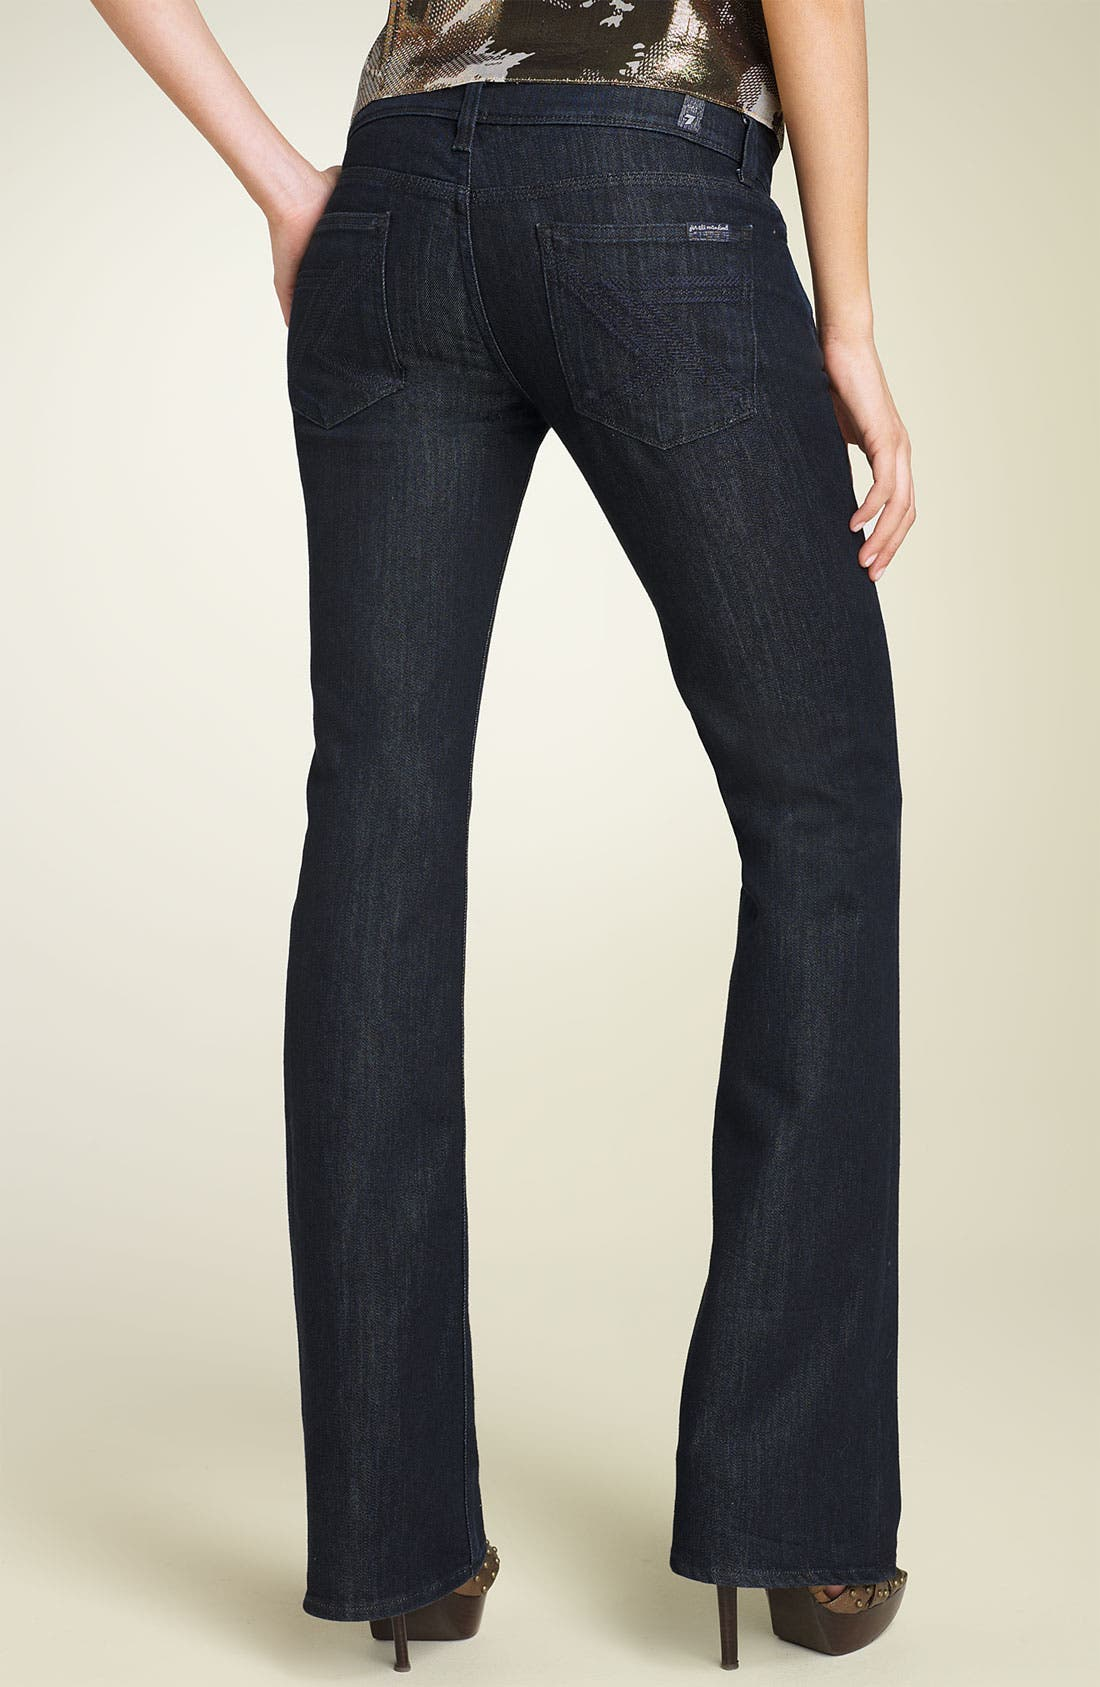 'Flynt' Bootcut Stretch Jeans,                             Main thumbnail 1, color,                             450